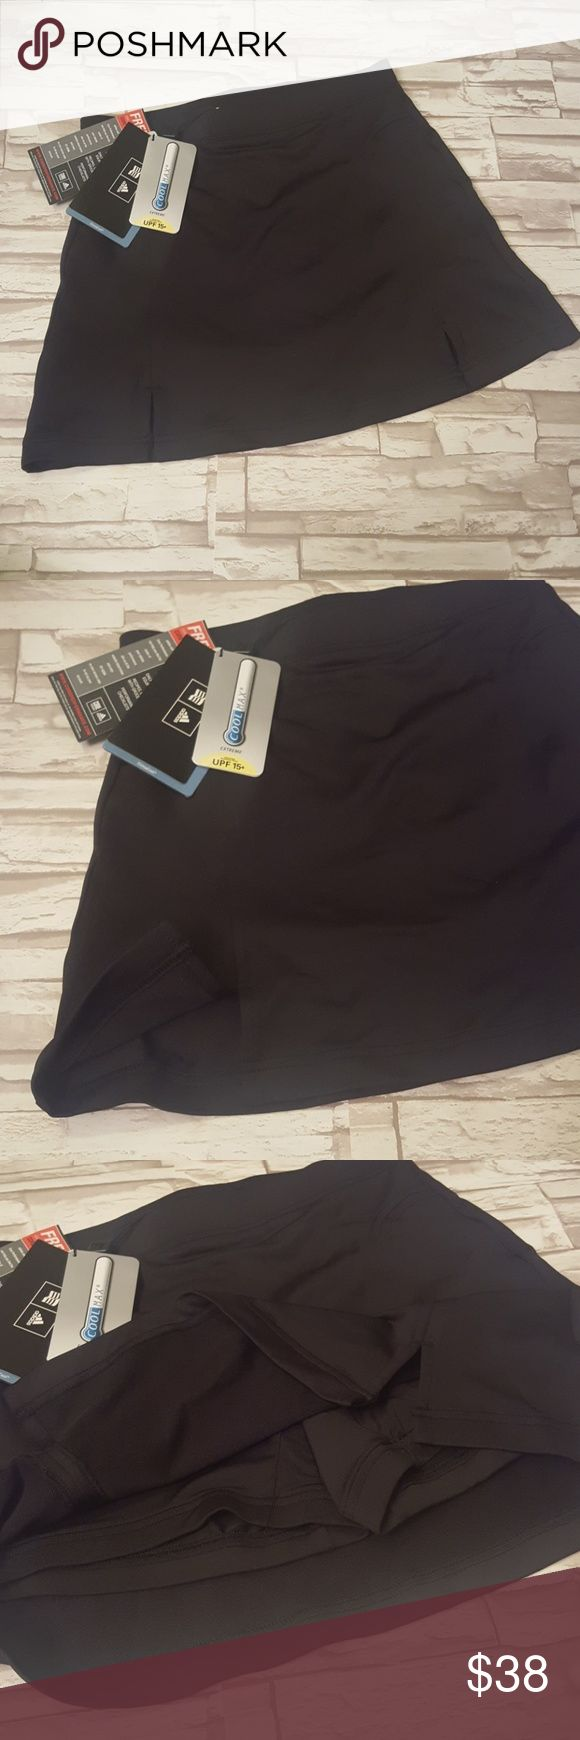 """NWT New Adidas climacool golf skort - size 2 New with tags! Adidas climacool coolmax skort in black.  Size 2.  Shorts under skirt.  Skirt length is 14"""".  95% polyester 5% spandex.  Purchased at Golf Galaxy for $69.99 and then never wore. adidas Skirts"""